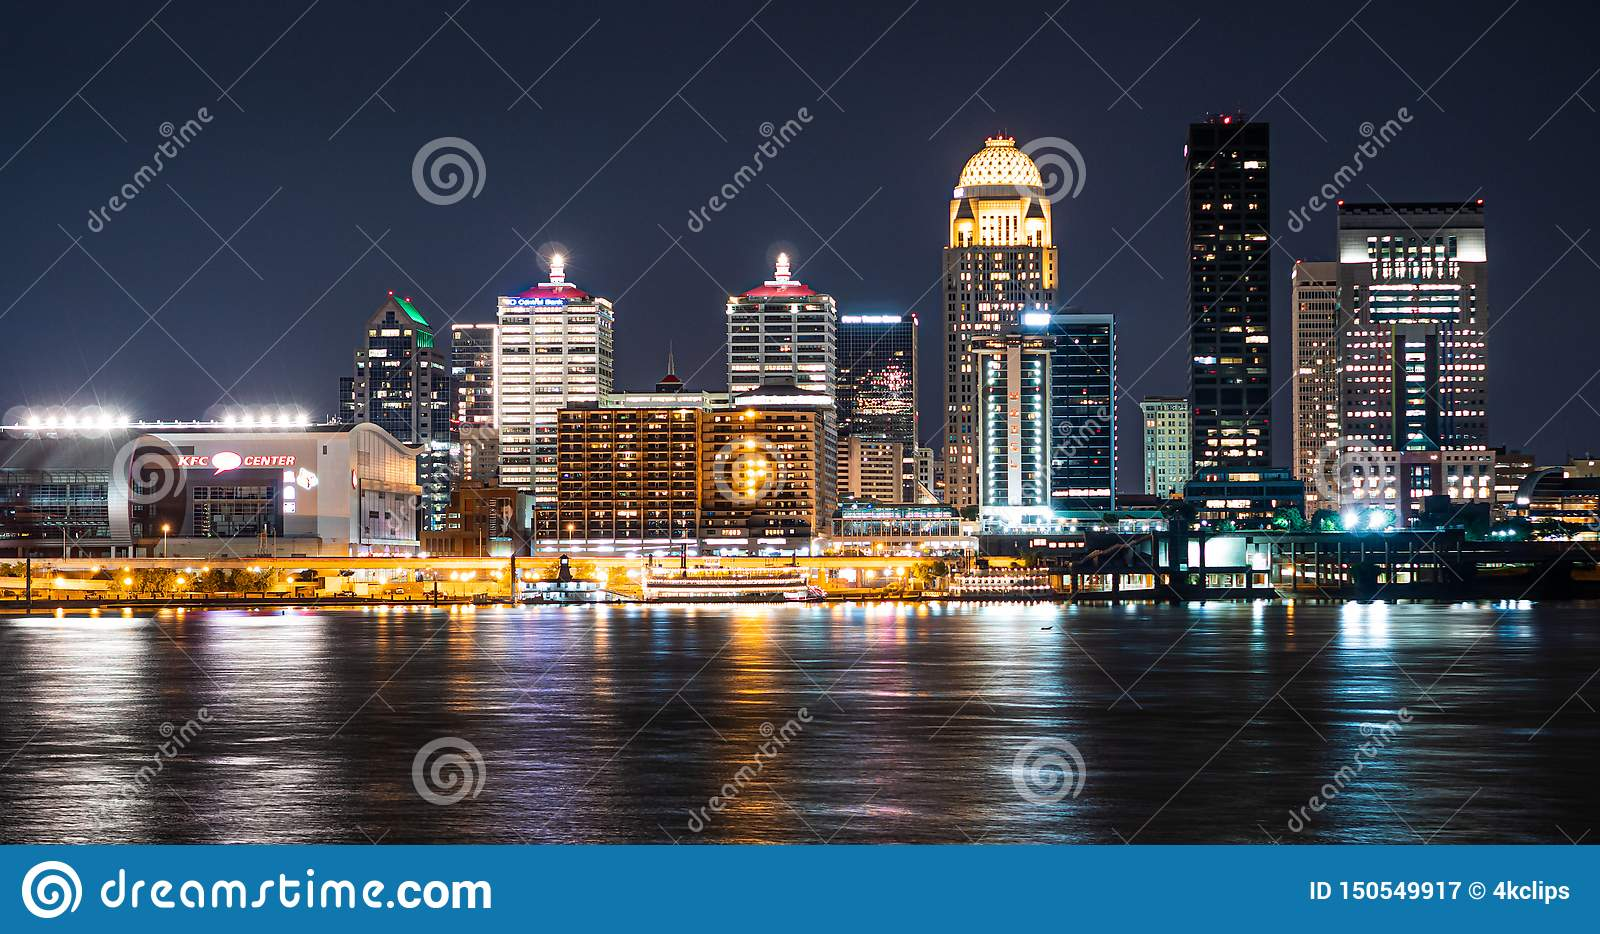 The city of Louisville by night